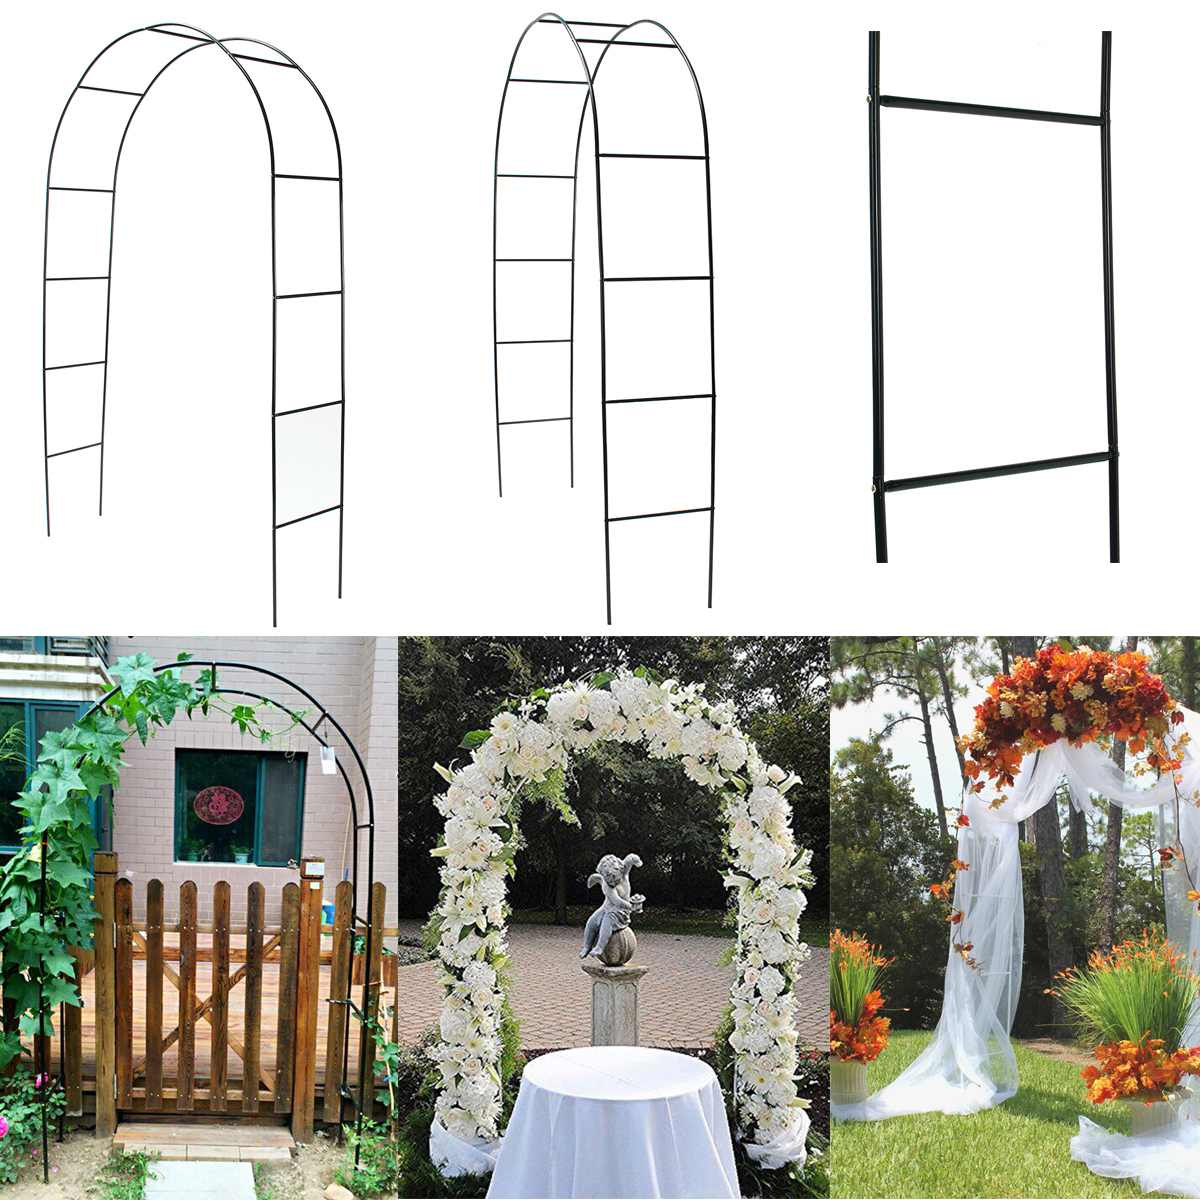 Us $17.2 15% Off|Diy Iron Wedding Arch Decorative Garden Backdrop Pergola  Stand Flower Frame For Marriage Birthday Wedding Party Decoration|Wedding  ... serapportantà Arches De Jardin